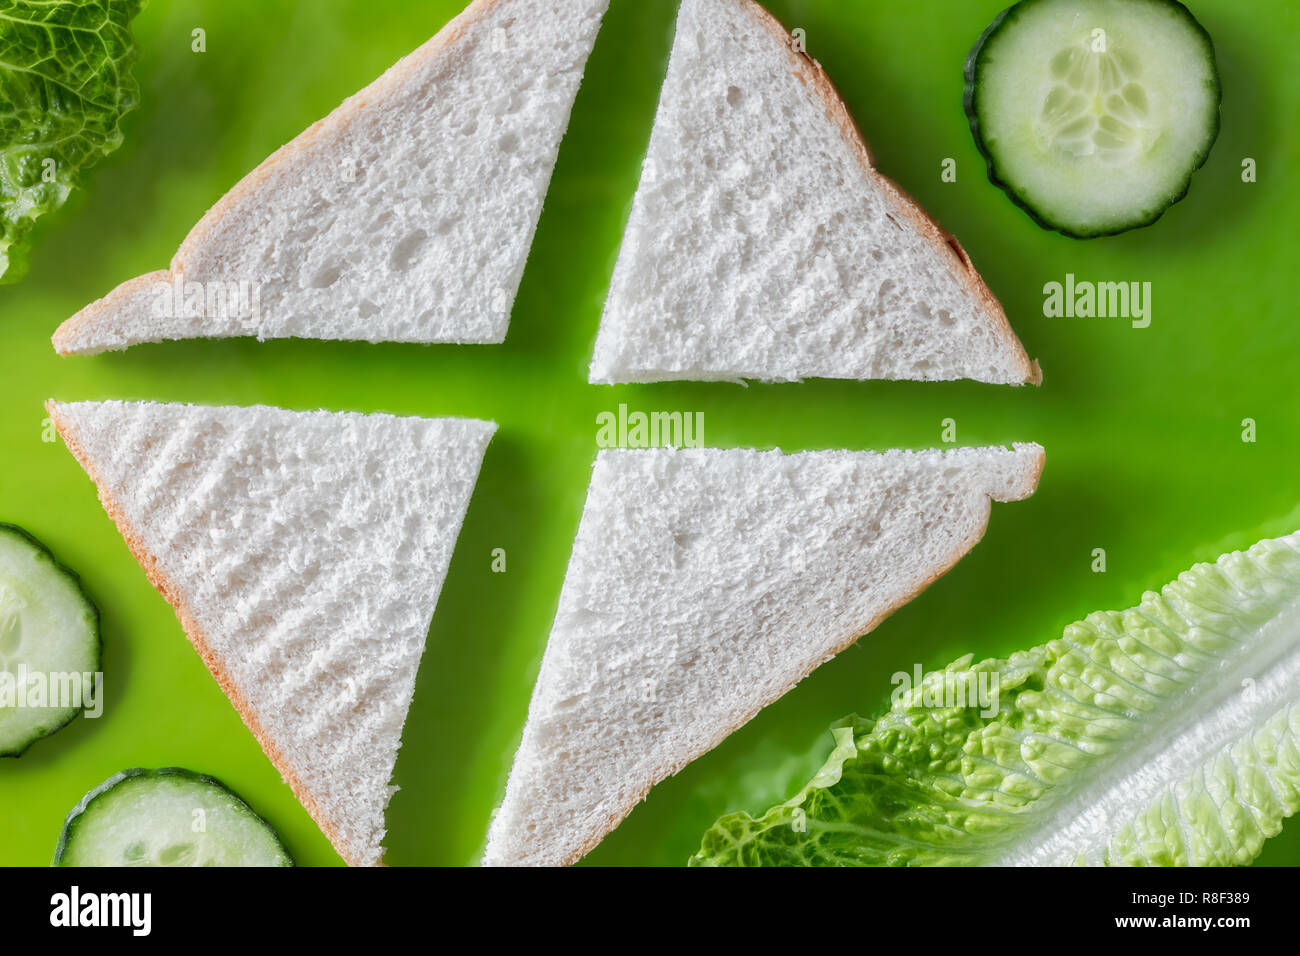 Flat lay of a deconstructed Cucumber sandwich - Stock Image